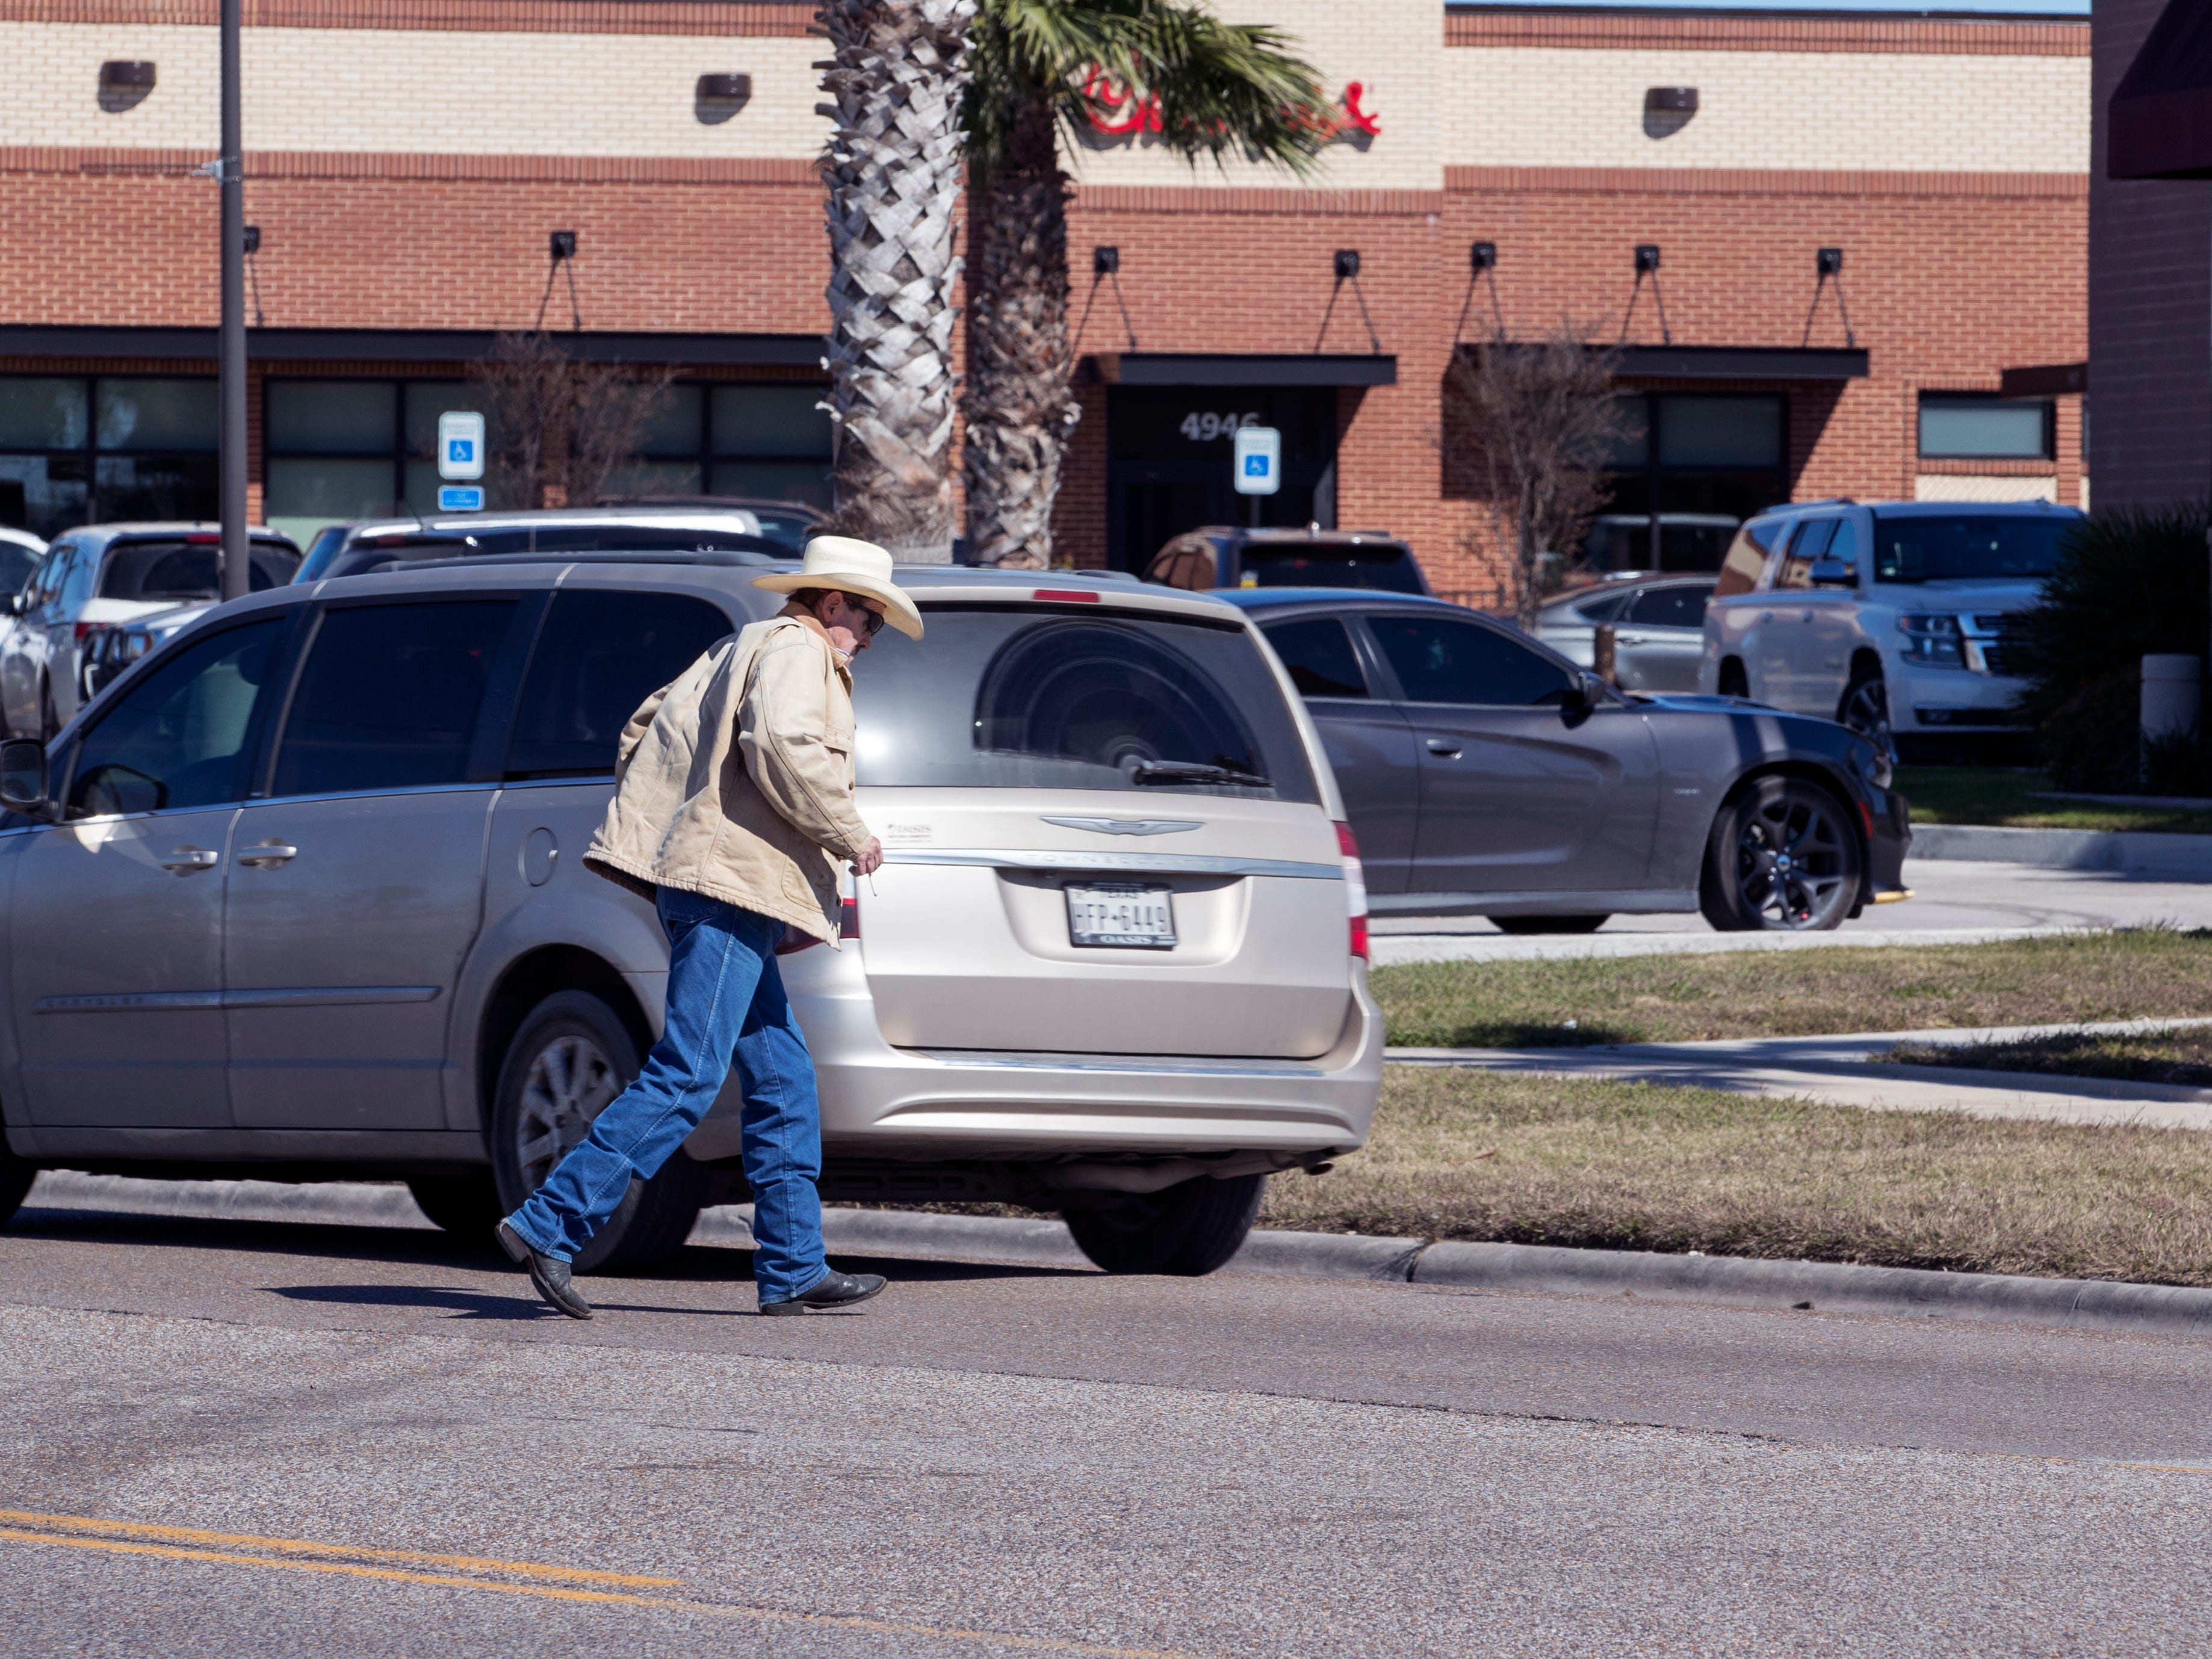 A man crosses in the middle of the street in the 5000 block of South Staples Street on Jan. 29, 2019. Statistics from the Corpus Christi Police Department show that a high number of auto-pedestrian accidents take place between the blocks of 5000 and 5800 South Staples Street.